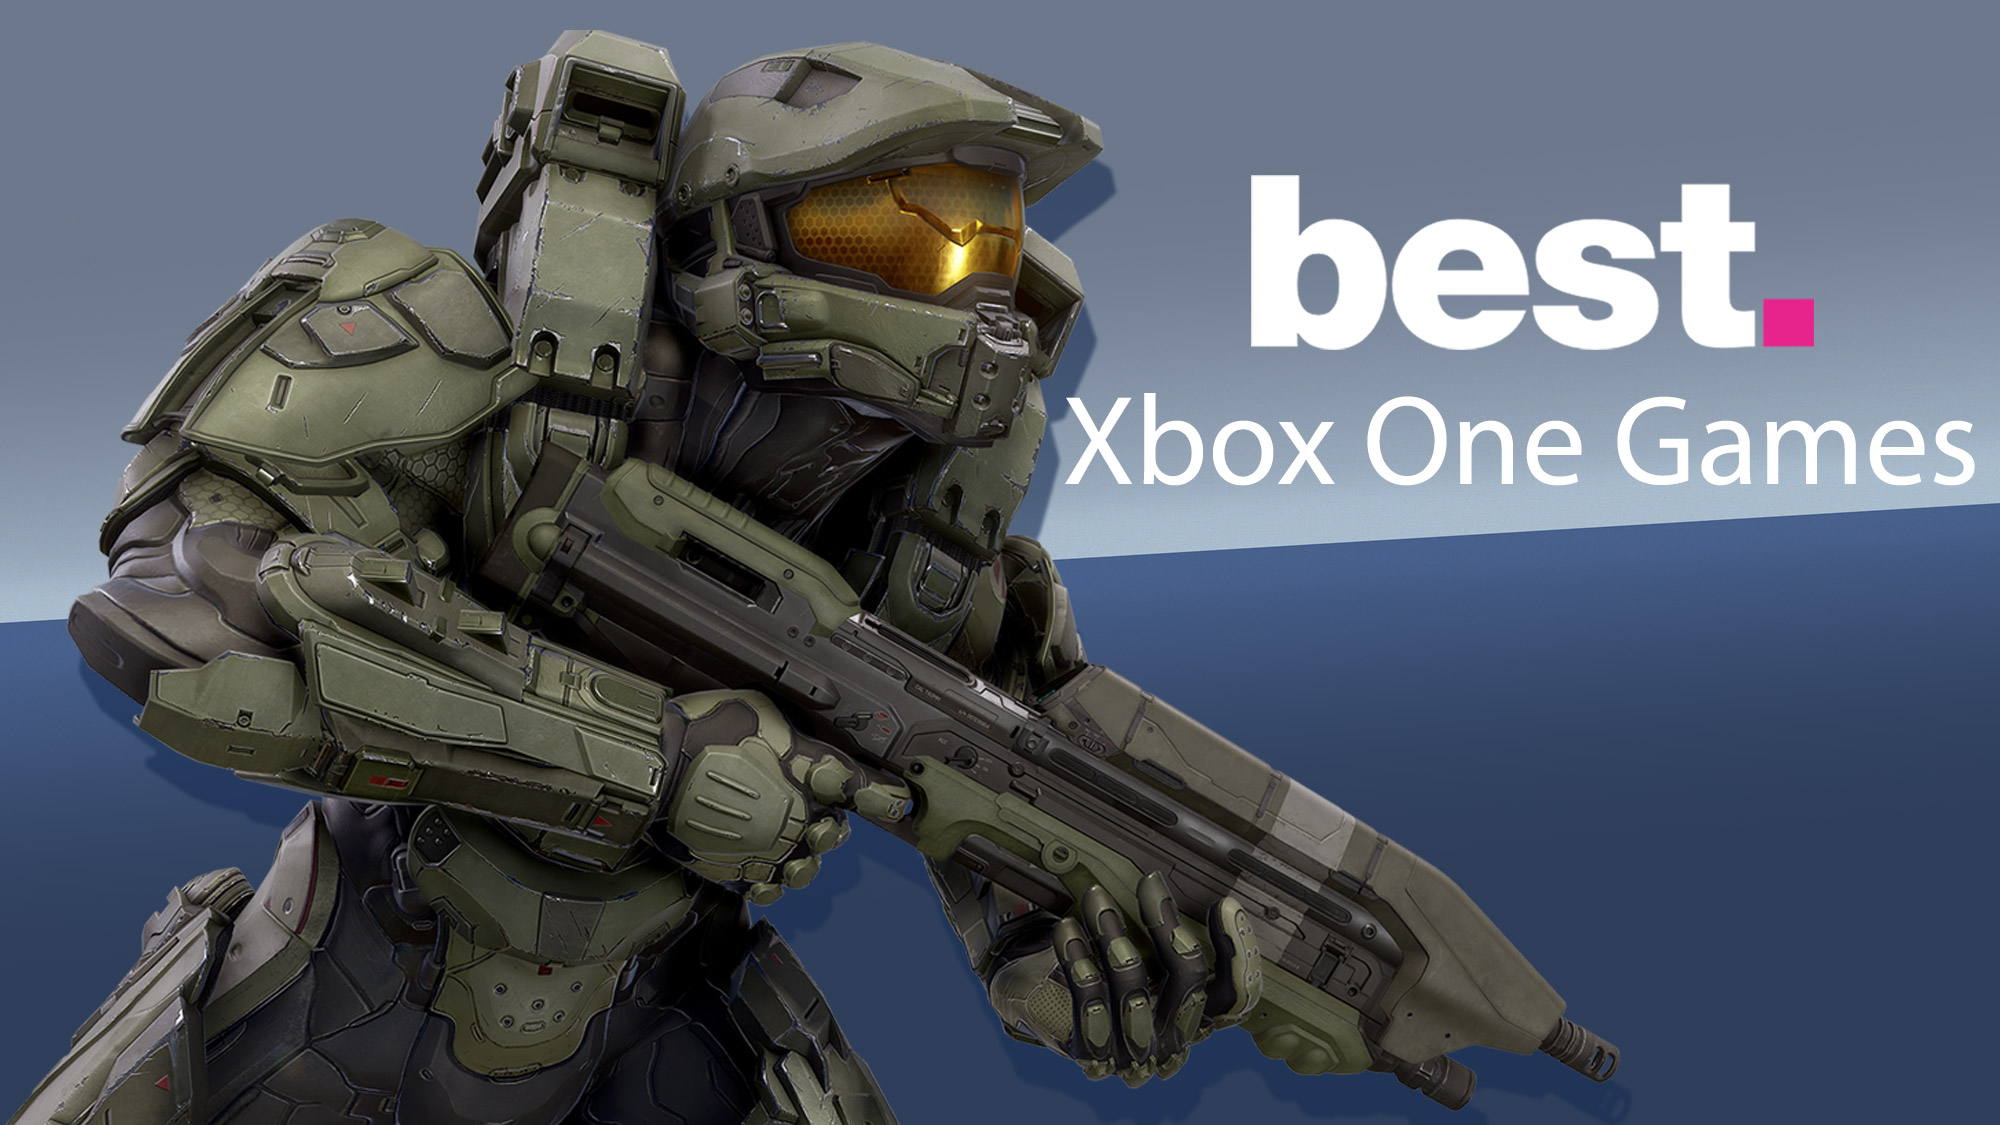 Best Xbox One Games 2020 The Xbox One Games You Need To Play Techradar